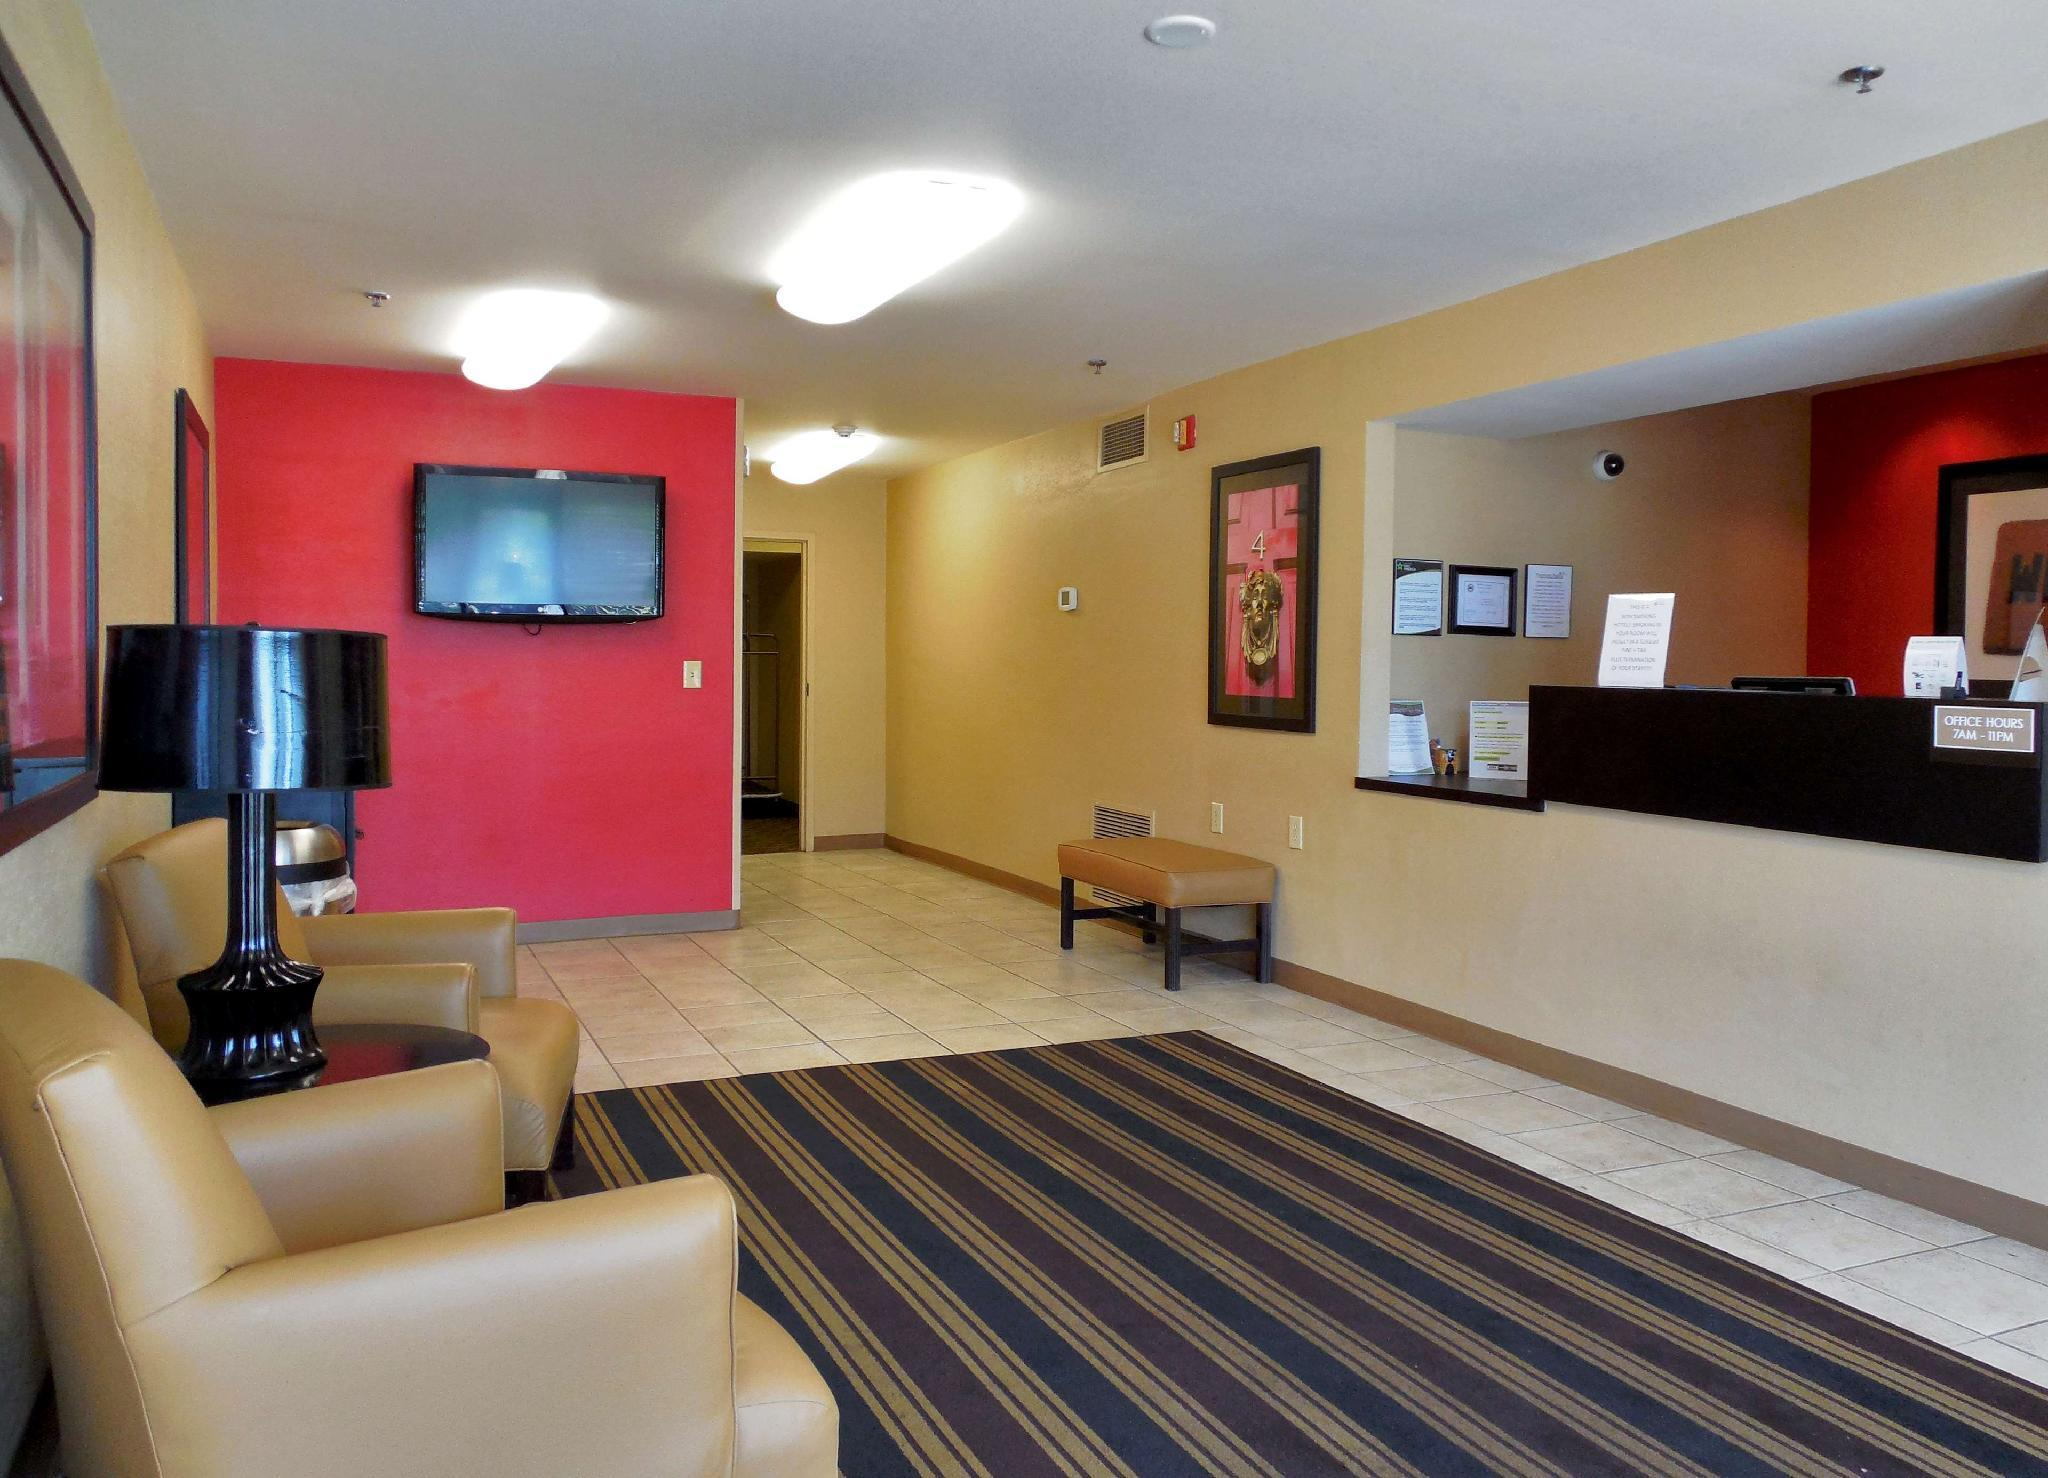 Extended Stay America - Newport News - I-64 - Jefferson Avenue, Newport News